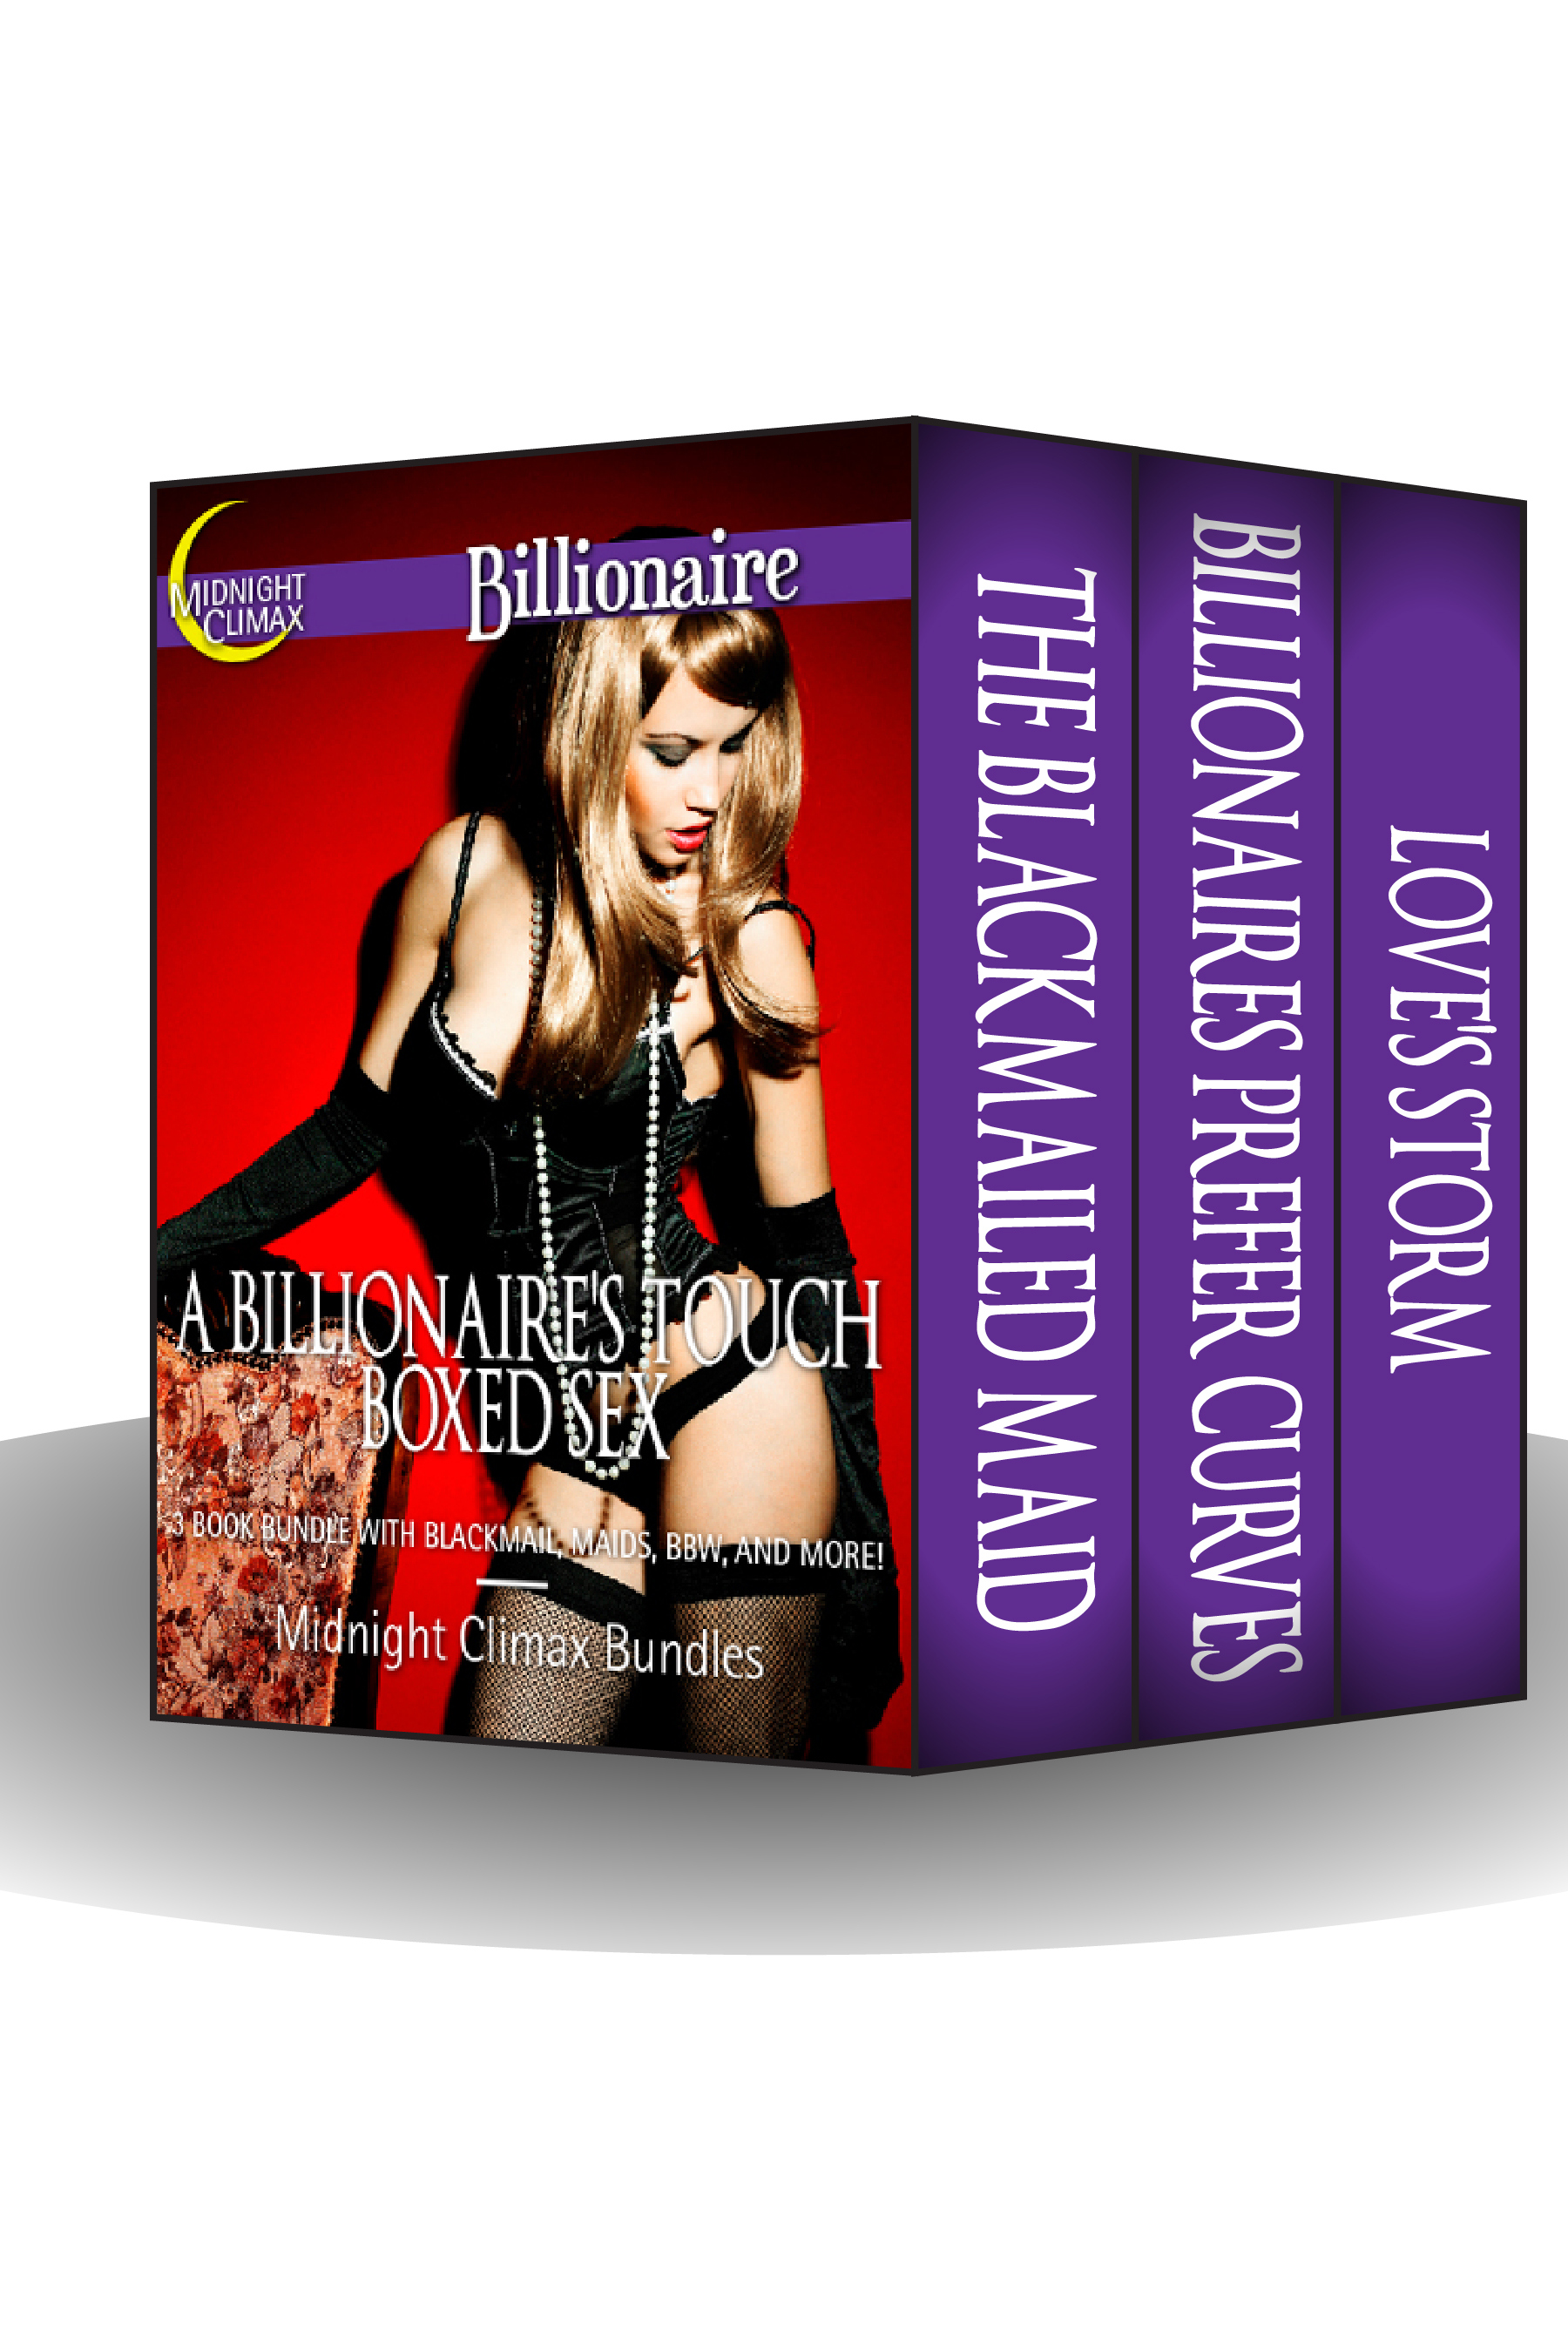 Midnight Climax Bundles - A Billionaire's Touch Boxed Set (A 3 Book Bundle With Blackmail, Maids, BBW and More!)